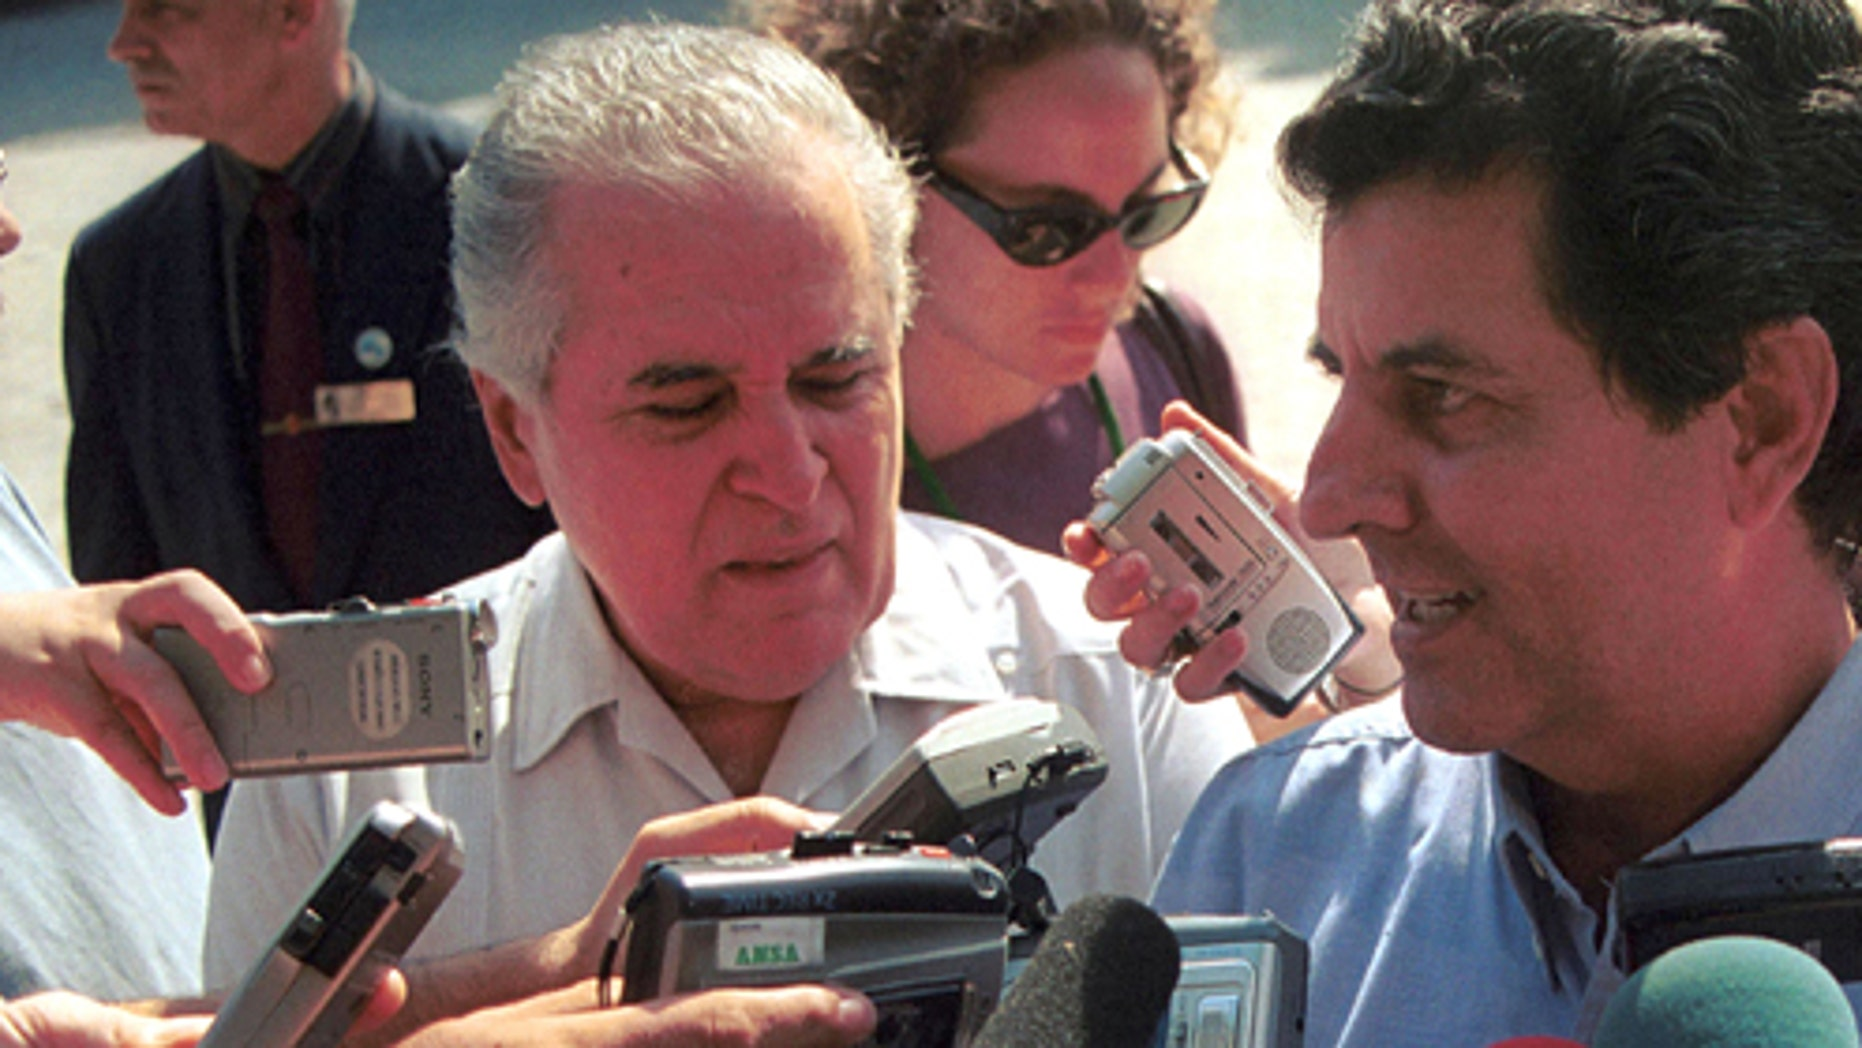 405296 02: Cuban dissidents Elizardo Sanchez (L) and Osvaldo Paya (R) speaks to the news media after a talk with former U.S. President Jimmy Carter May 13, 2002 in Havana, Cuba. The dissidents spoke with Carter about Cuba's current human rights situation and asked him to start a dialogue with the U.S. Carter is the first U.S. president, in or out of office, to visit Cuba since Castro came to power in 1959. (Photo by Jorge Rey/Getty Images)